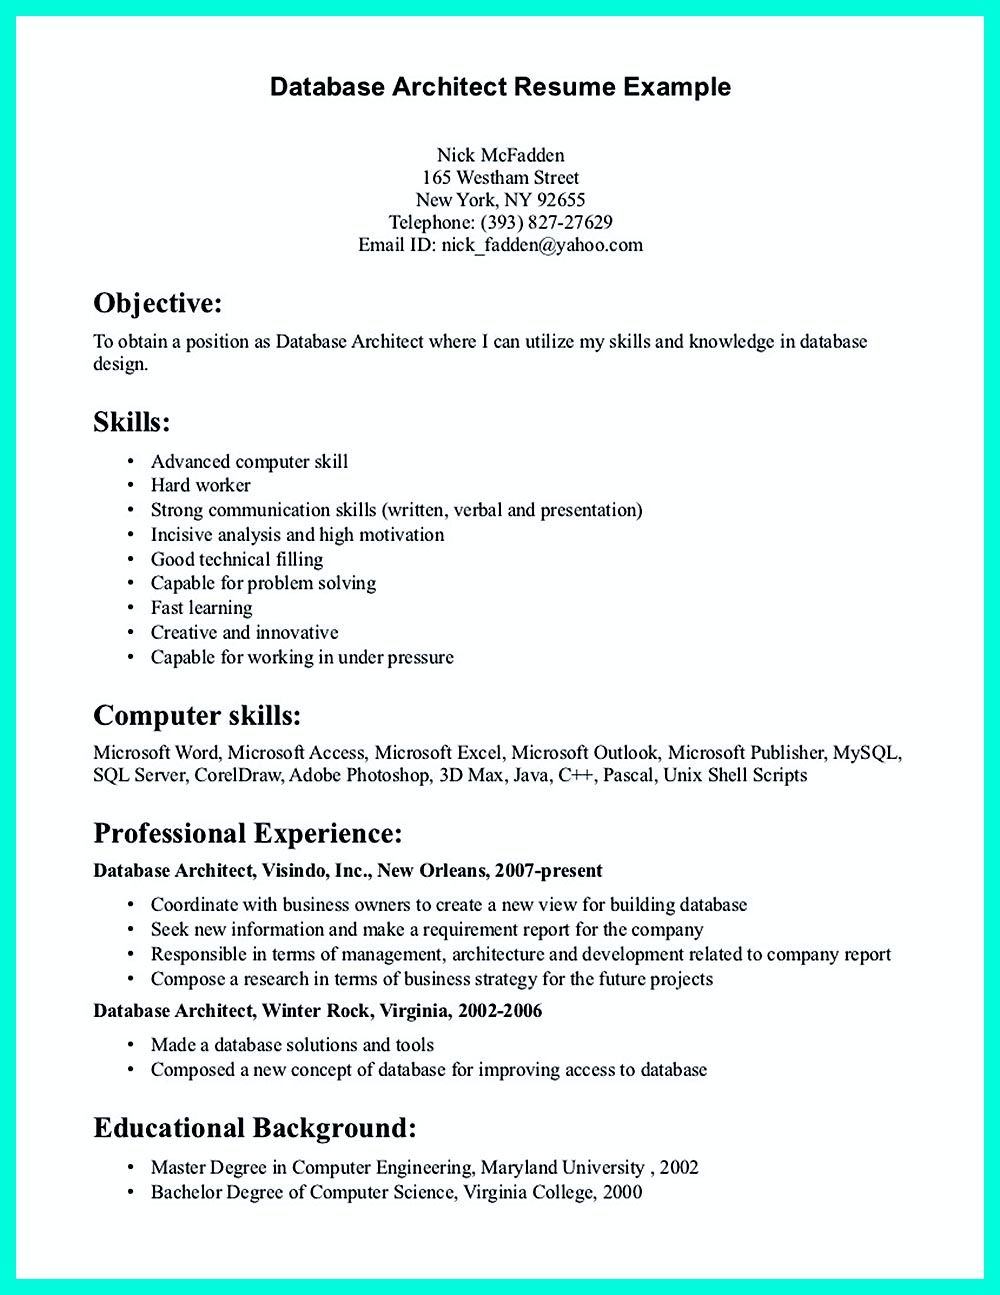 enterprise data architect sample resume excellent database architect resume template plus skills and - Seek Resume Template